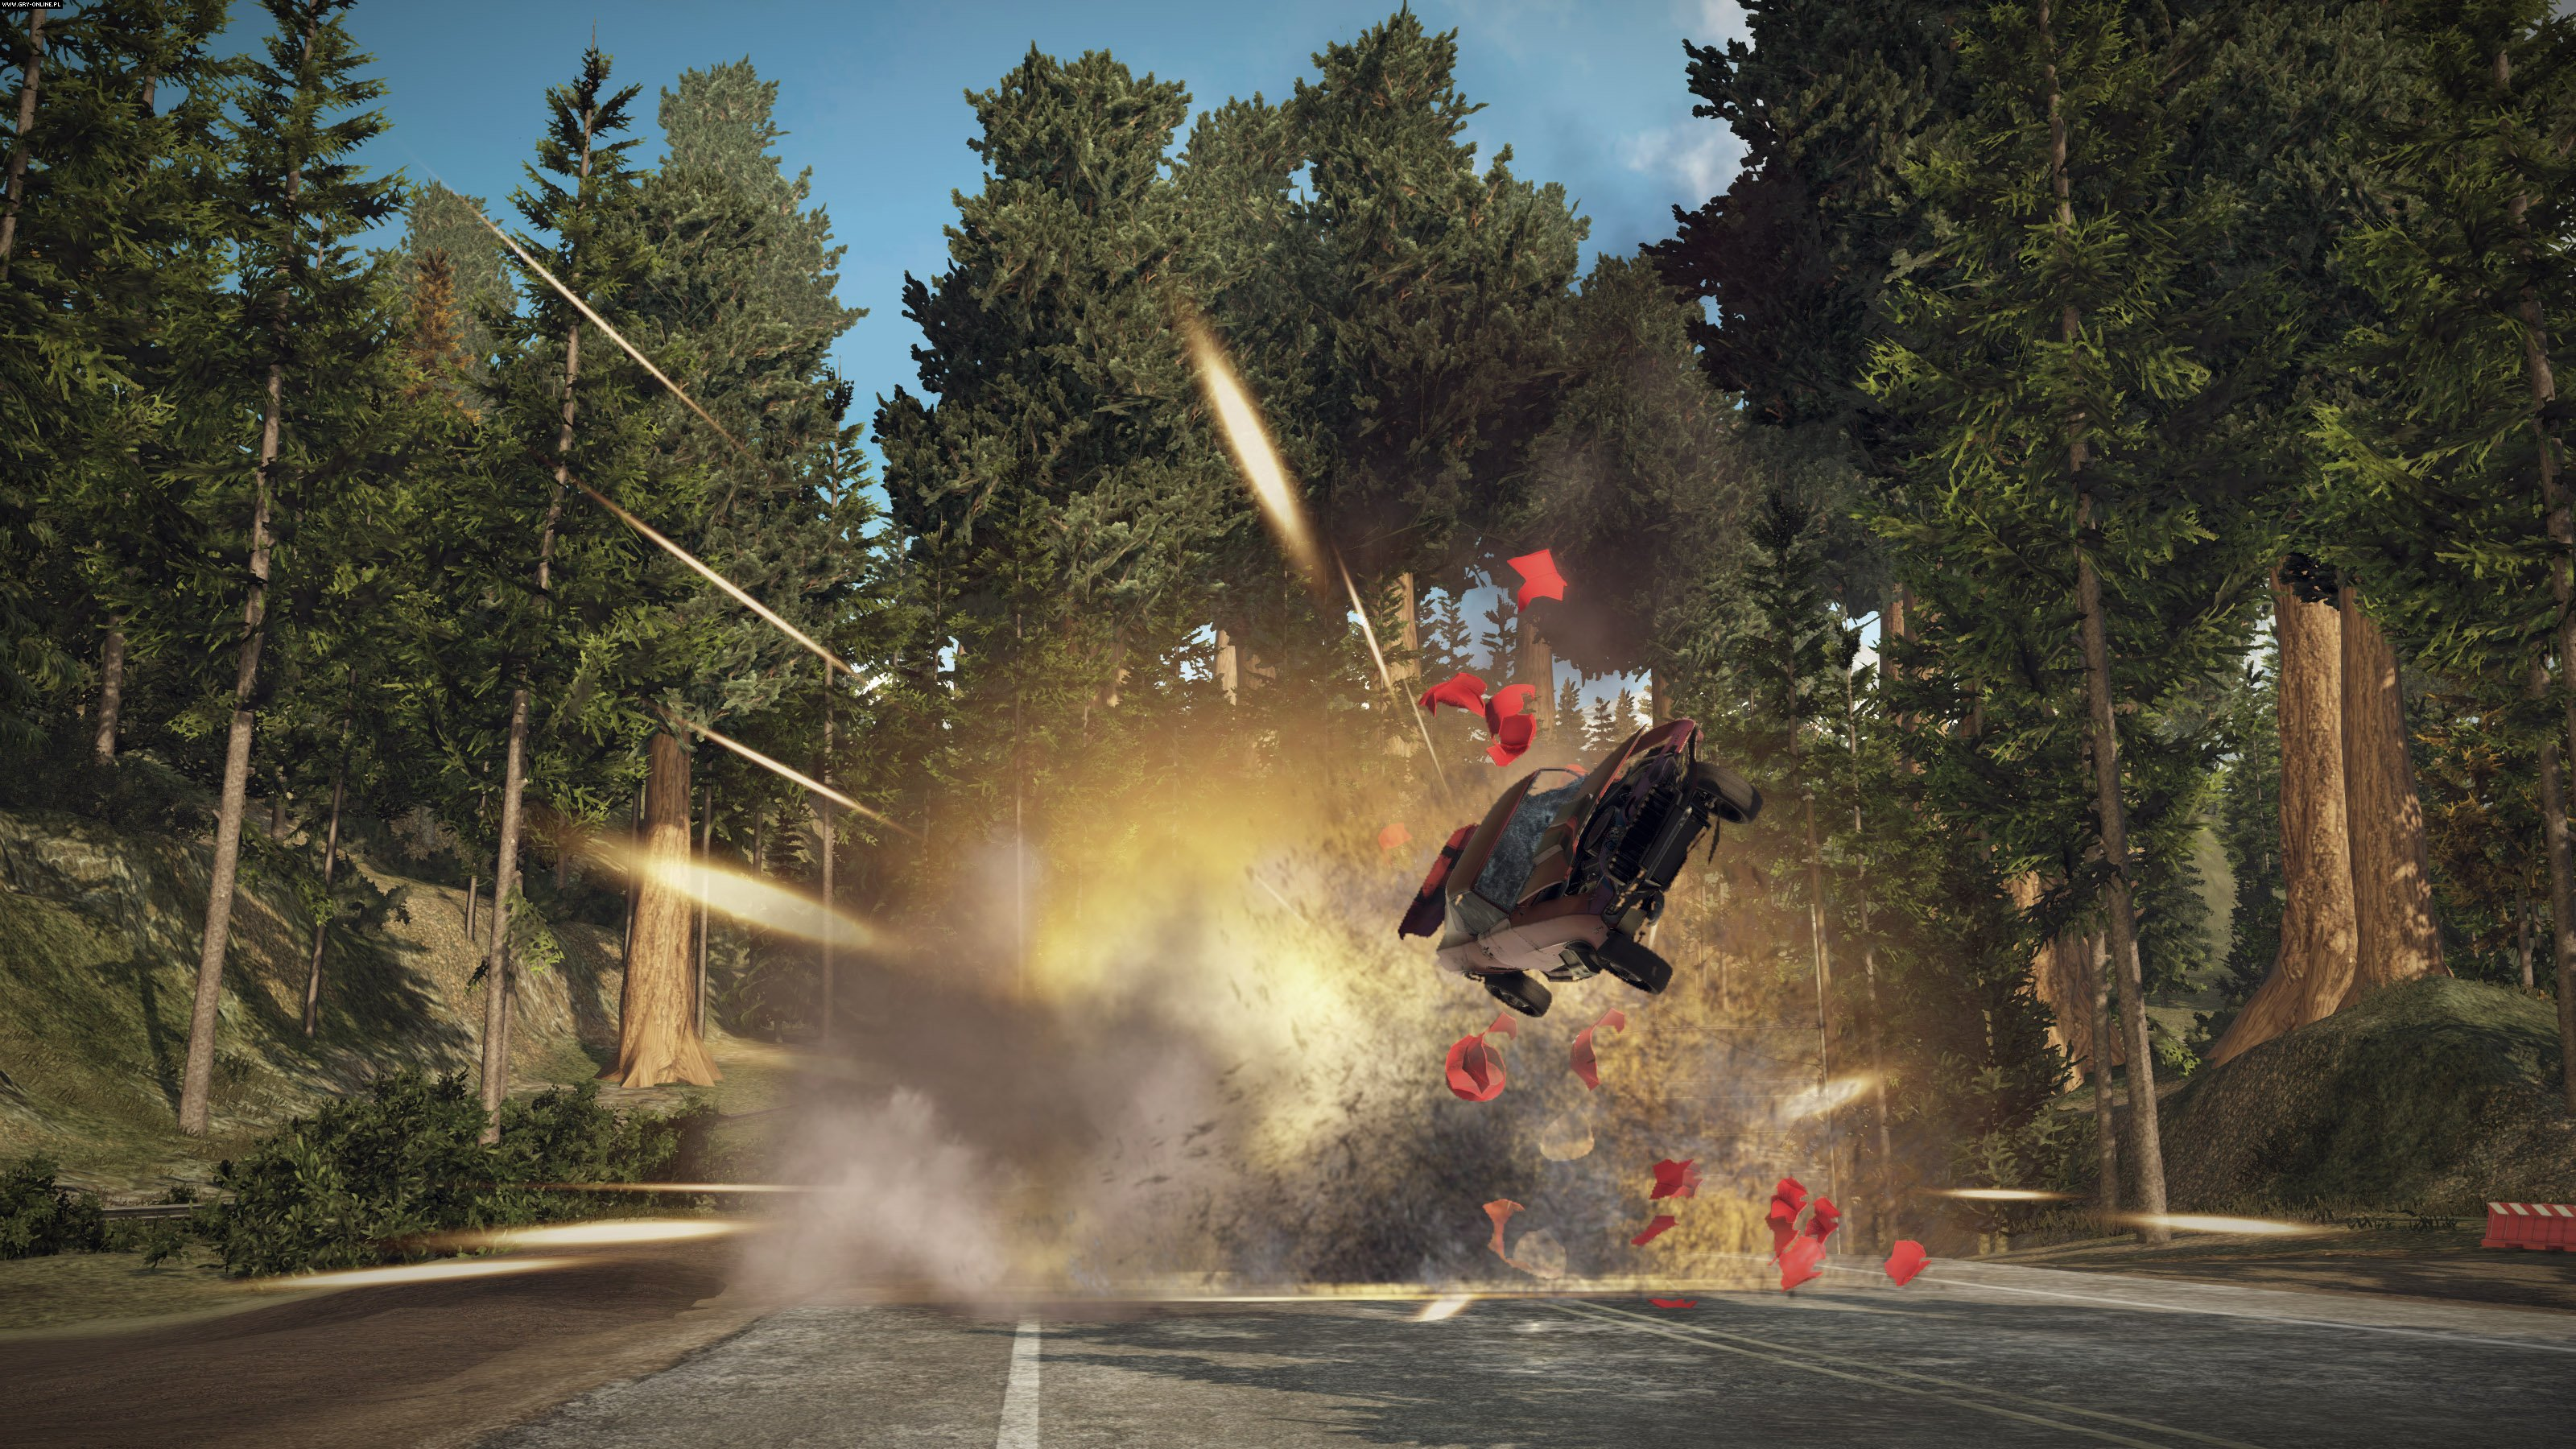 FlatOut 4: Total Insanity PC, PS4, XONE Games Image 11/11, Kylotonn, Strategy First